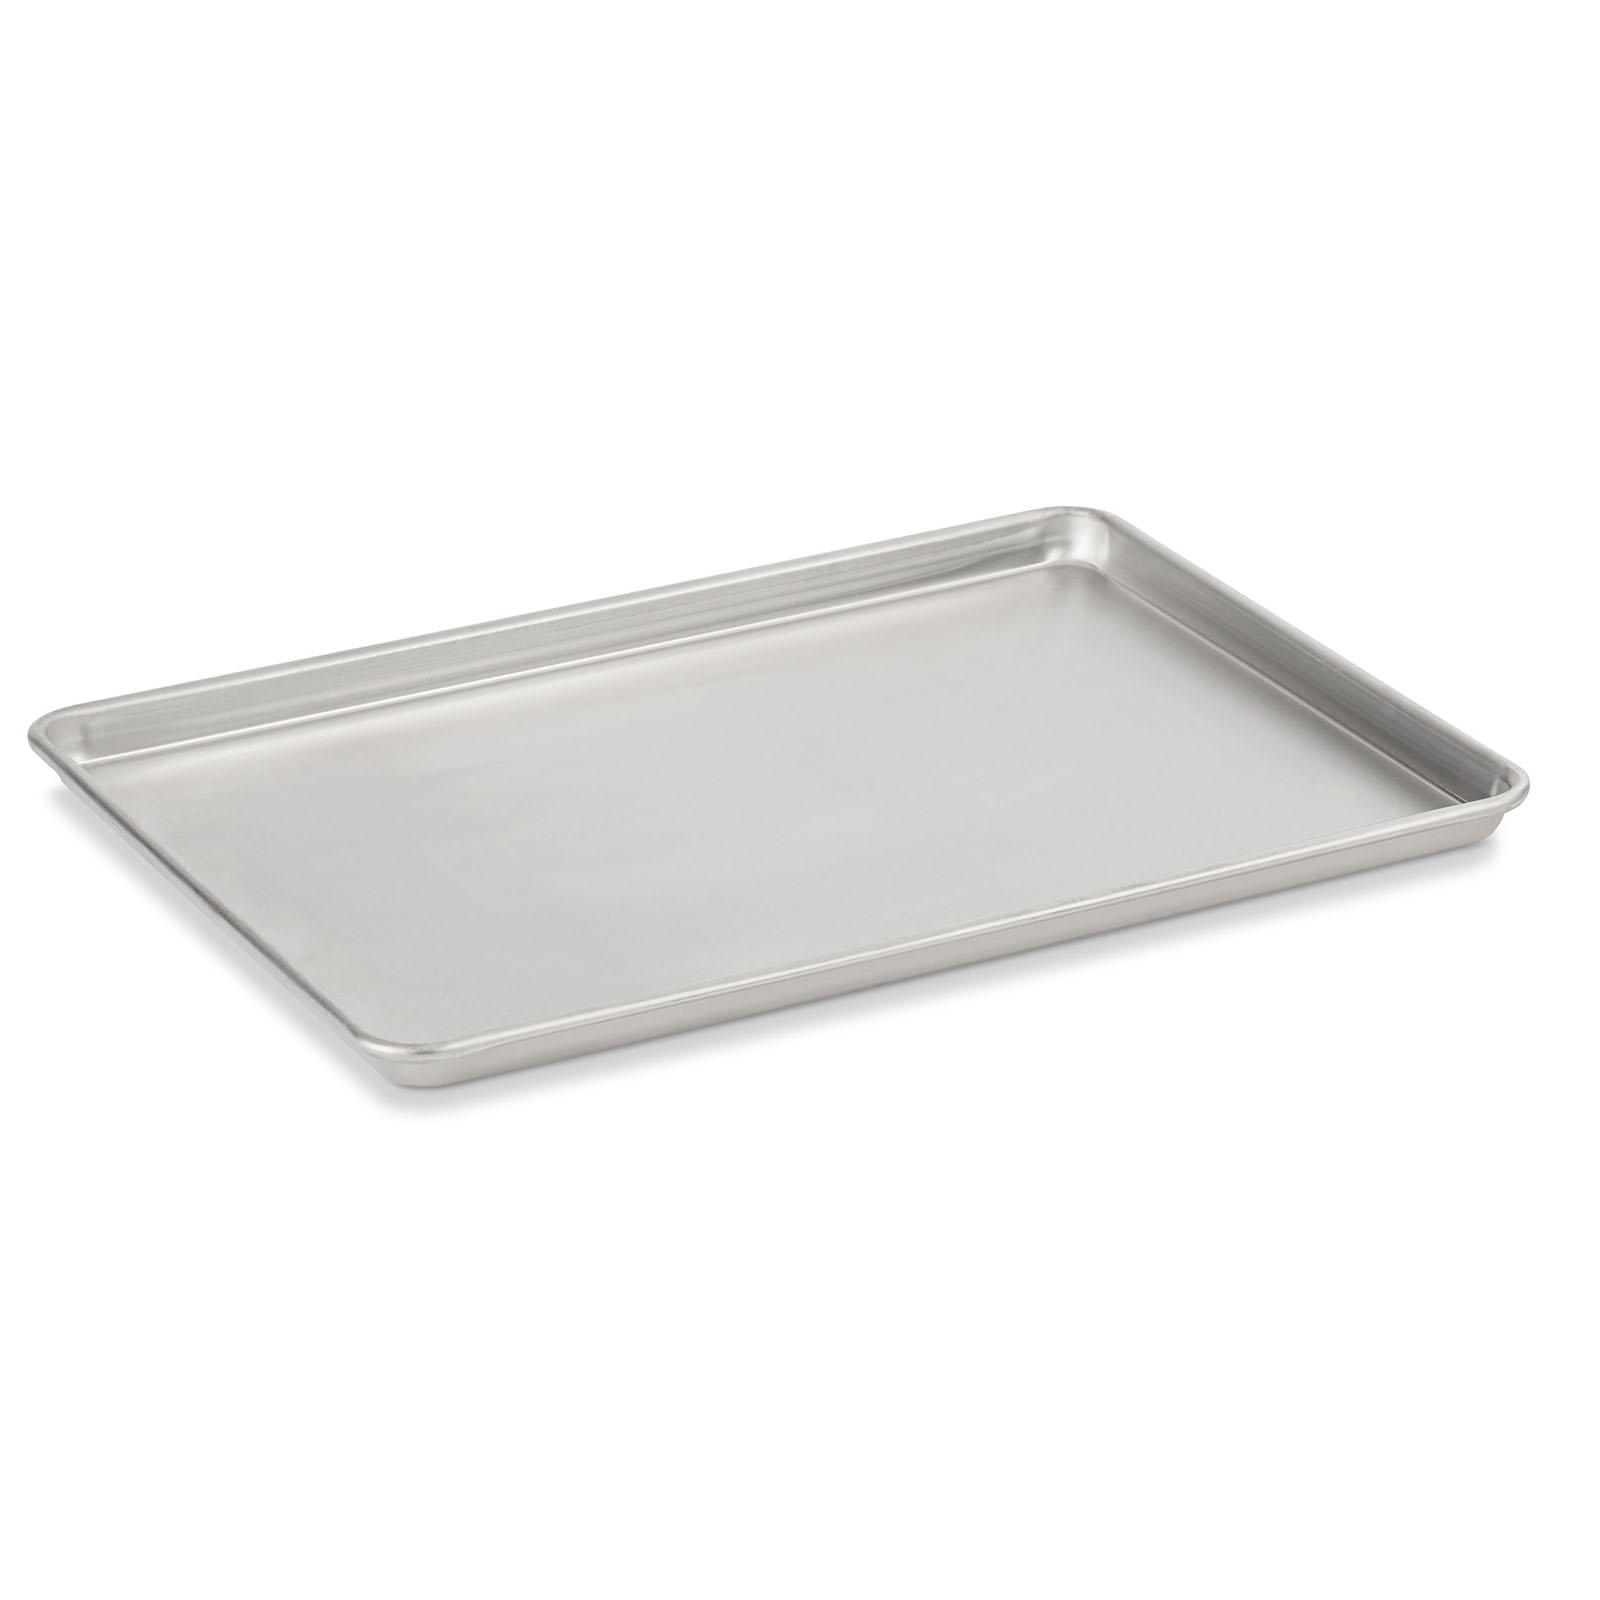 Vollrath 5223 bun / sheet pan